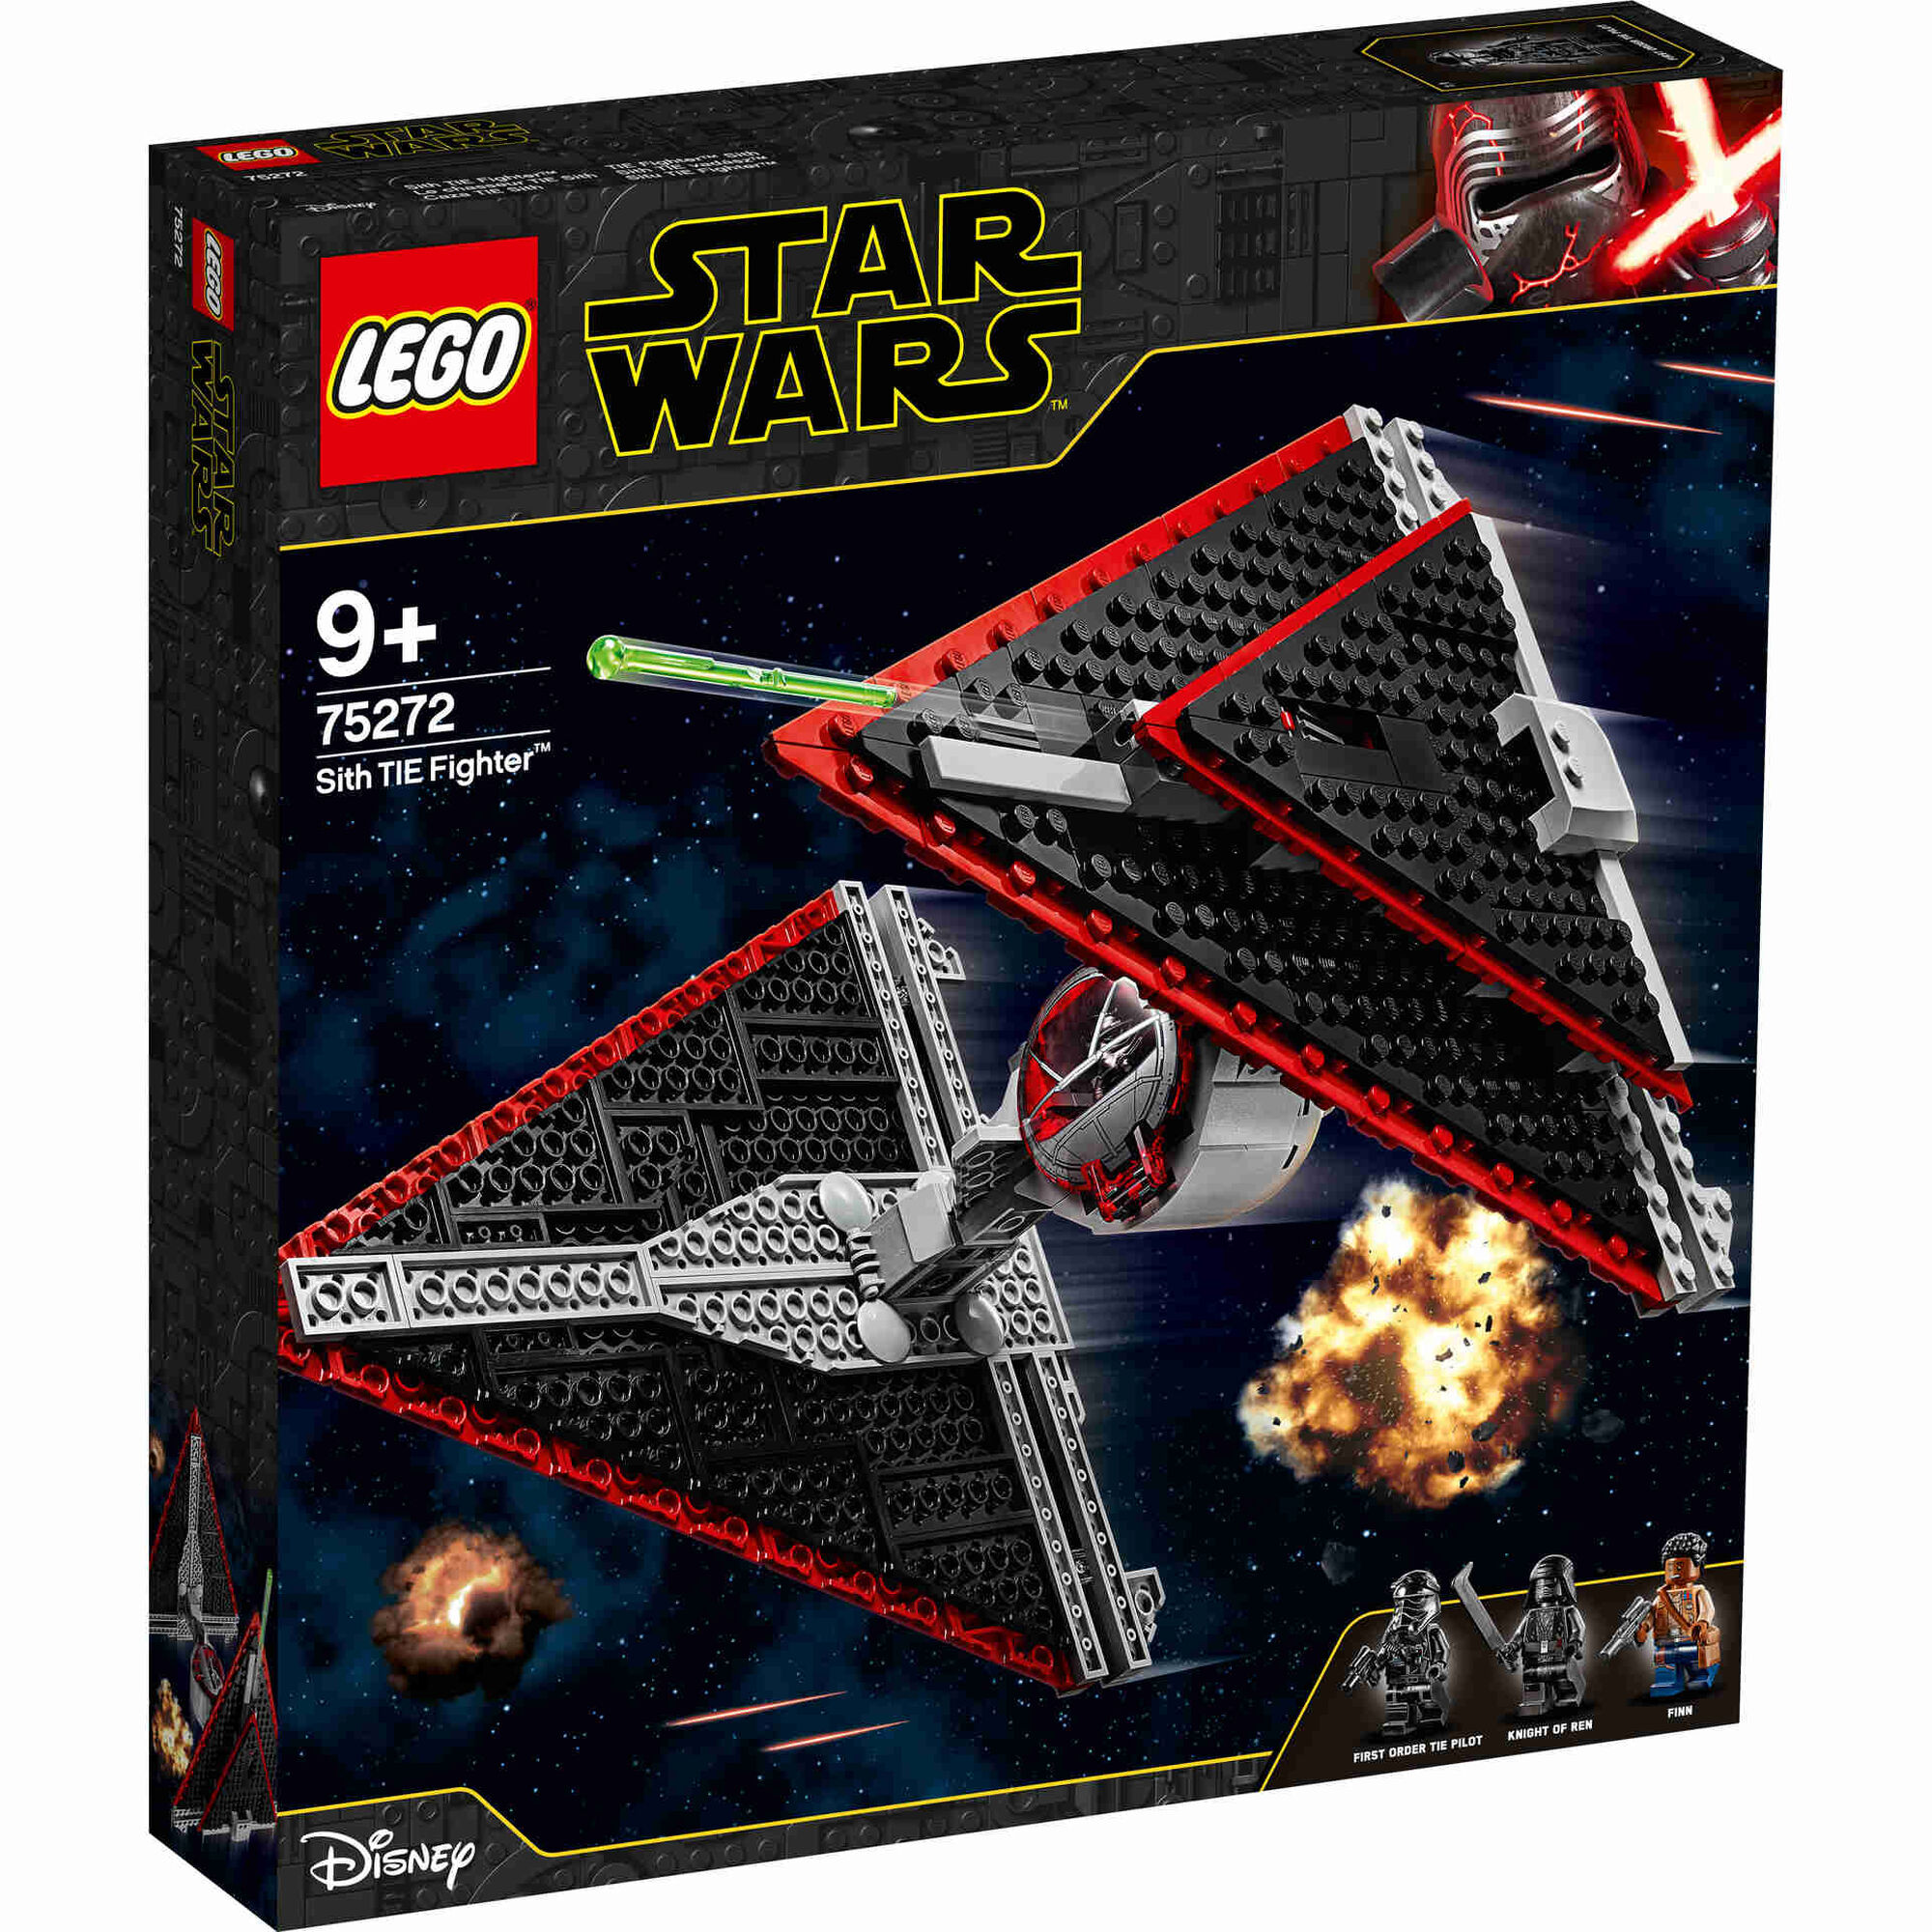 TIE Fighter Sith - 75272